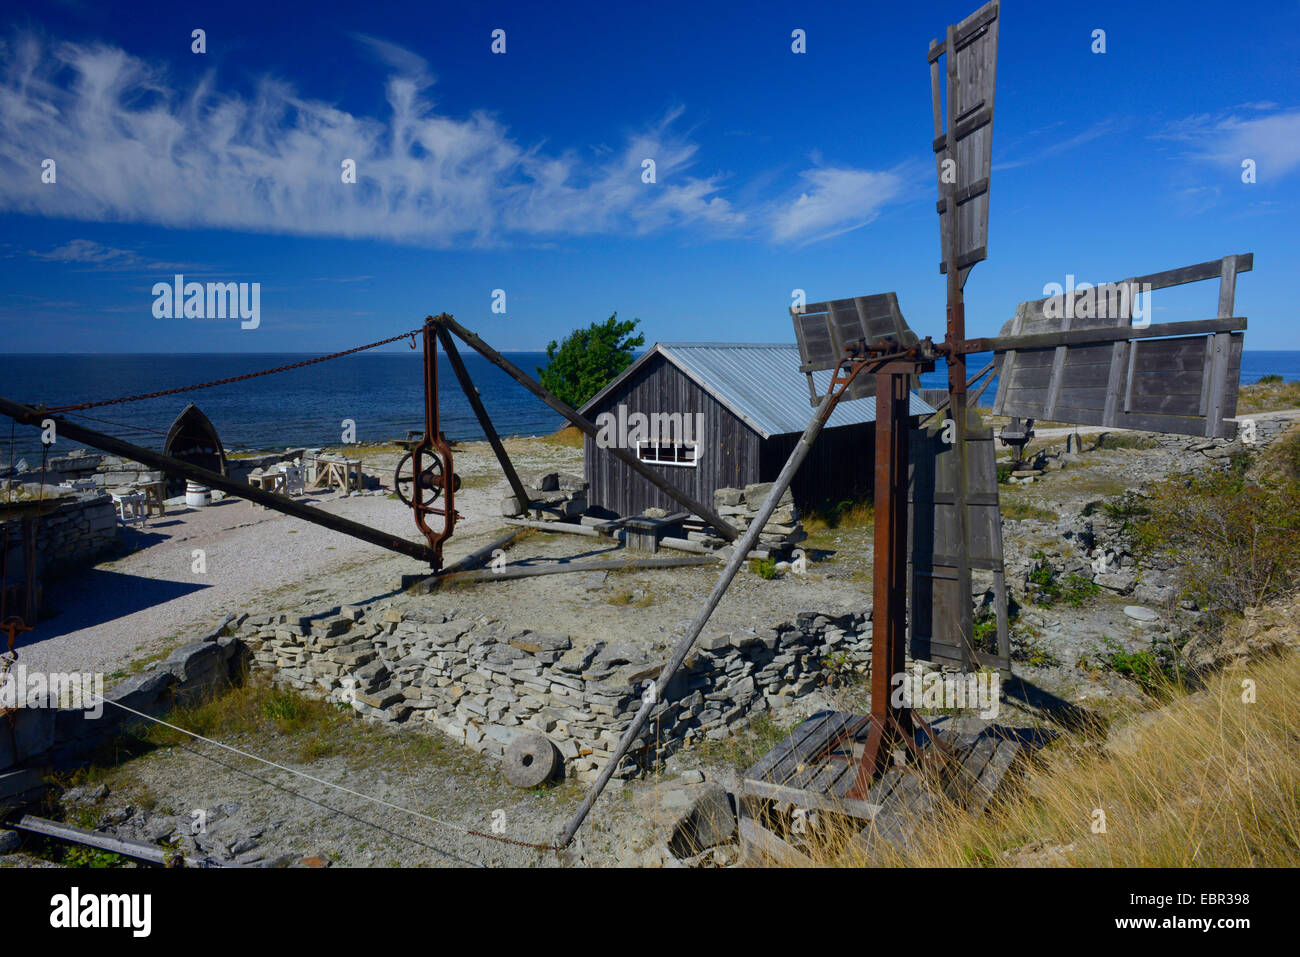 open-air museum sandstone quarries near Kaettelvik, Sweden, Hoburgen, Gotland - Stock Image